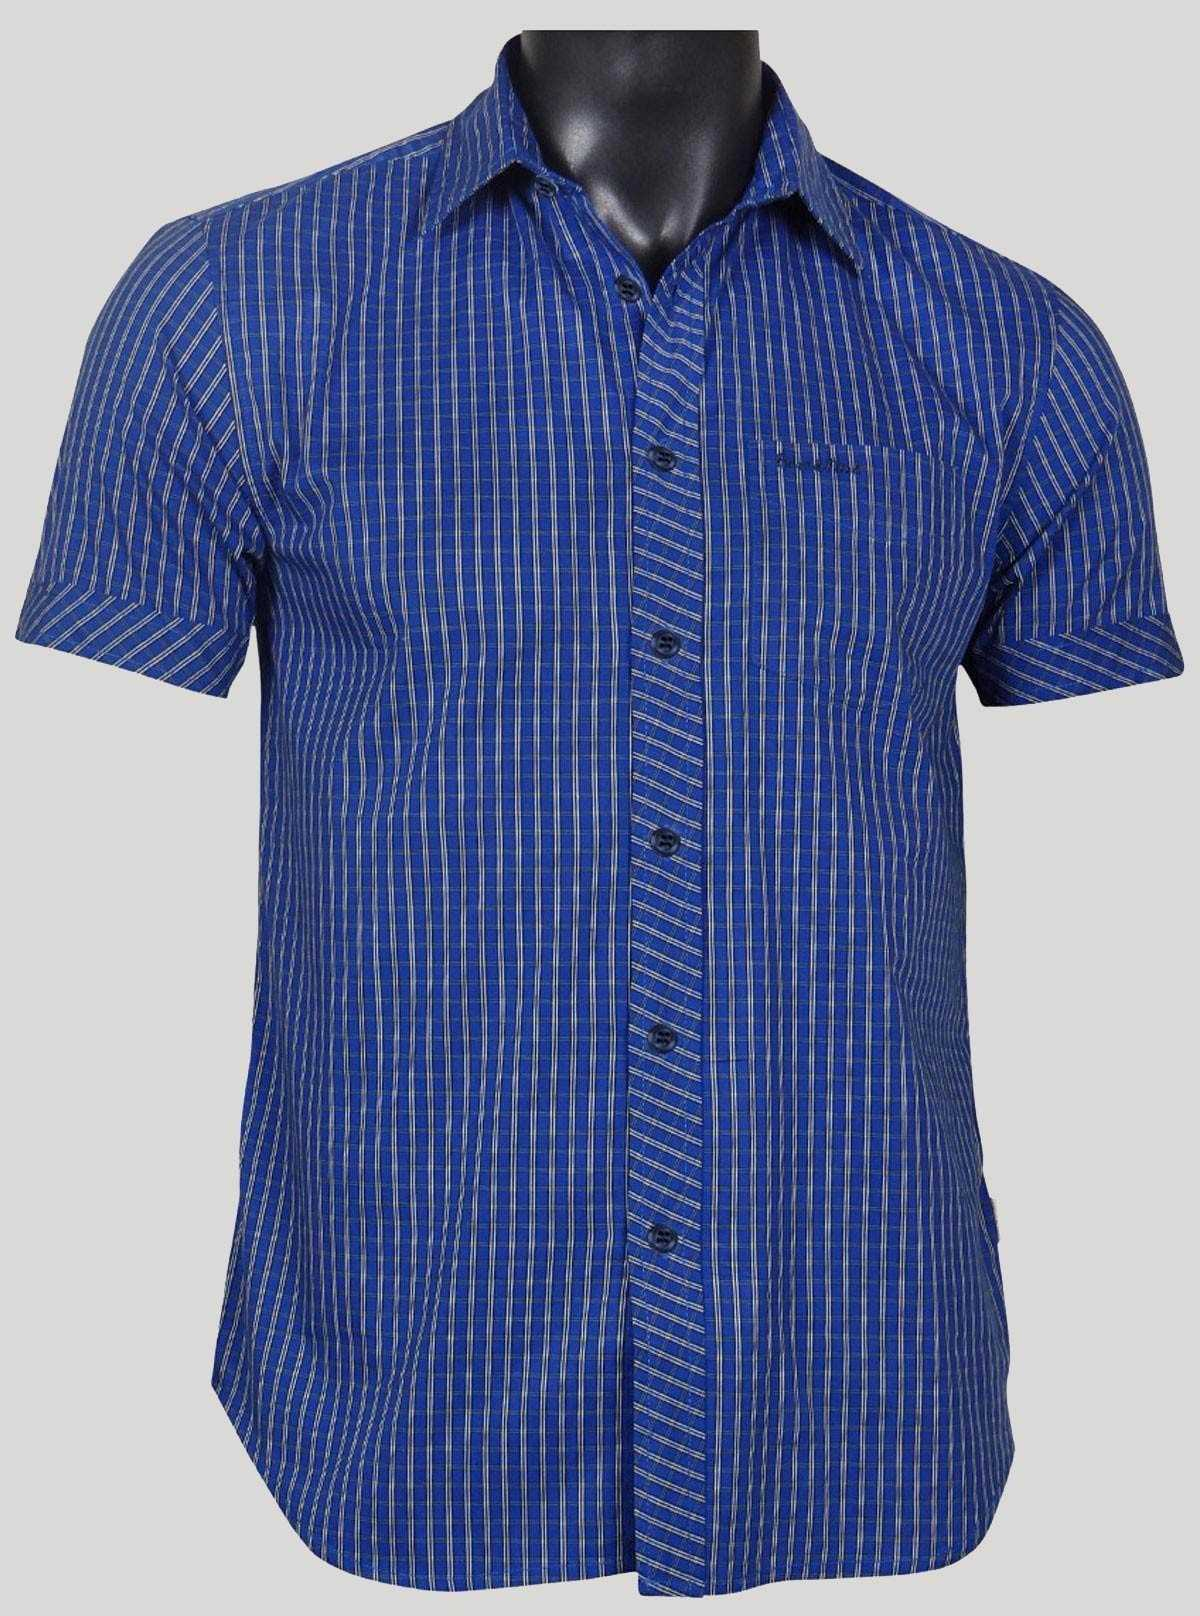 Slim Fit - Blue yellow stripped Shirt Boer and Fitch - 1